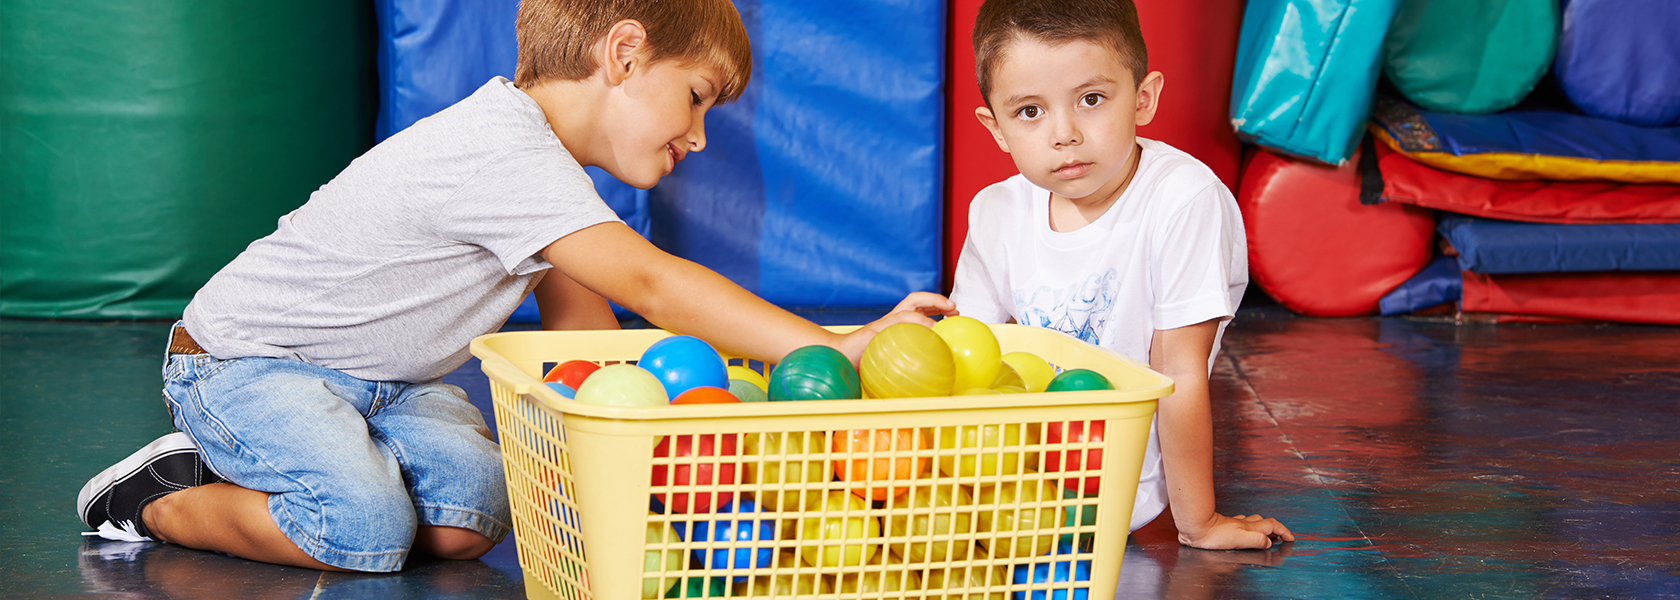 Nursery Cleaning, Sanitisation and Disinfection Services in Dubai & Abu Dhabi